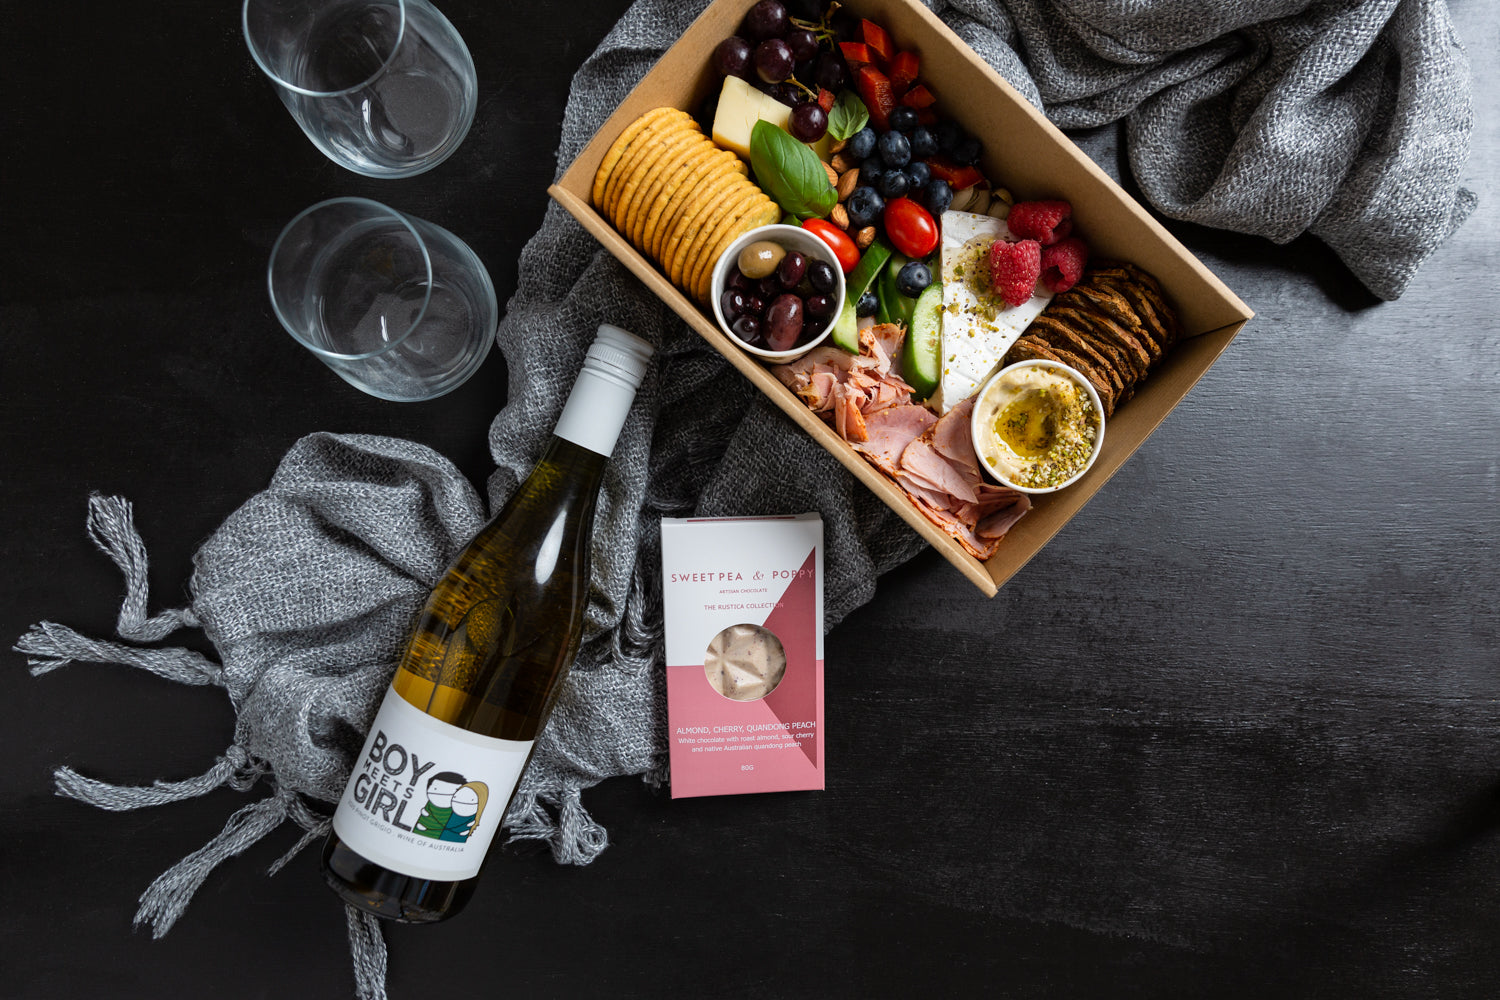 Gift Pack- Picnic perfection